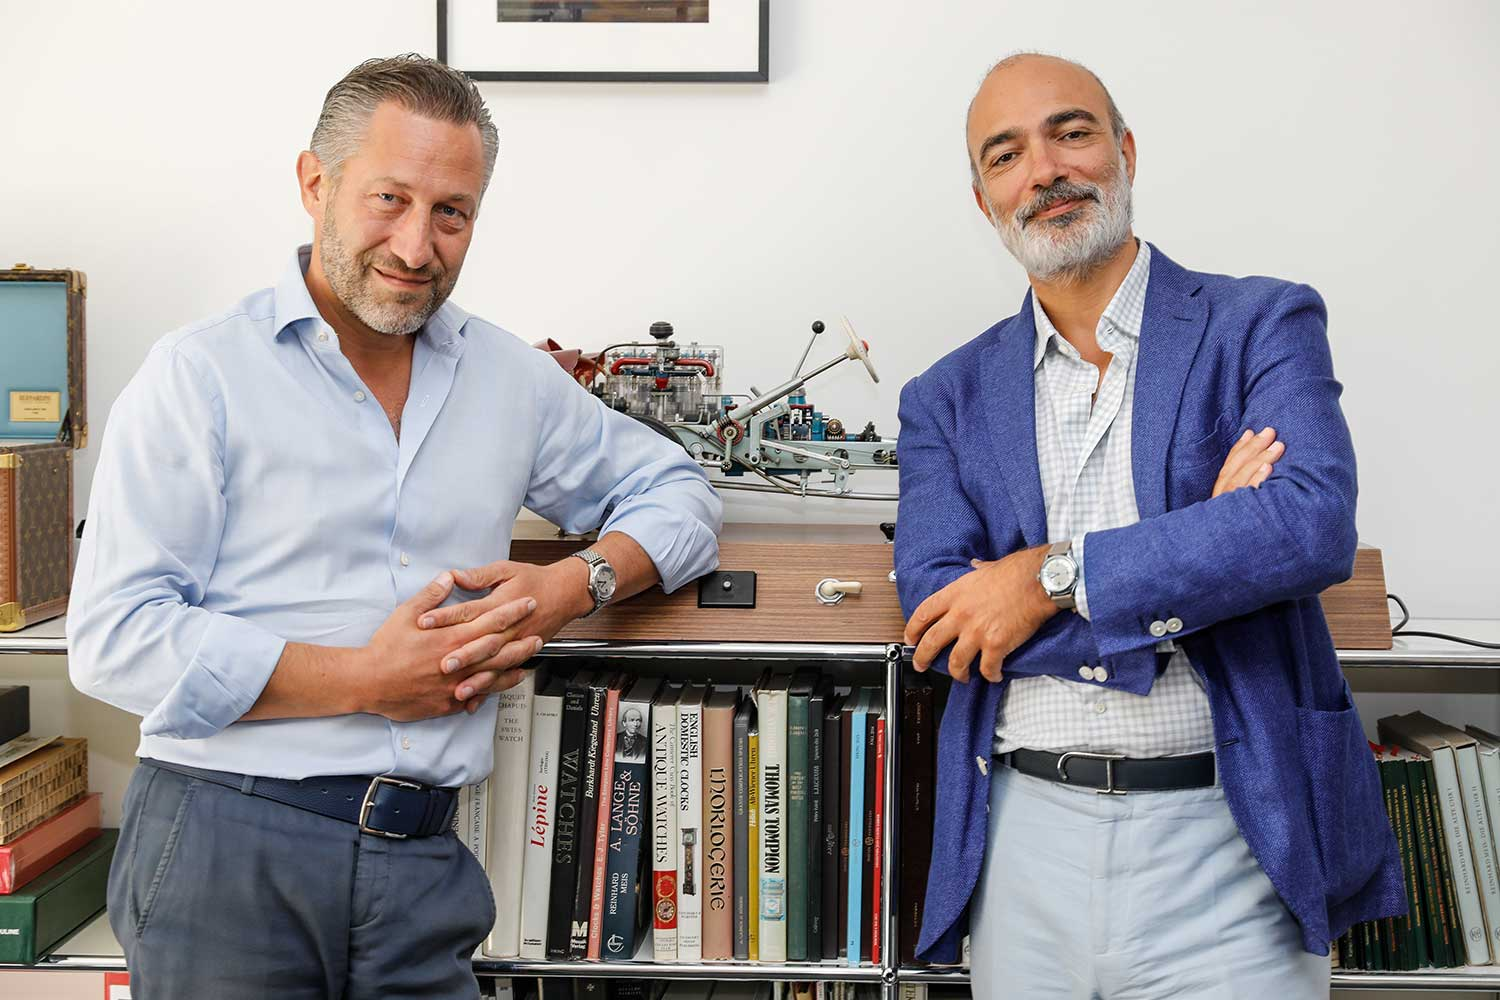 Aurel Bacs, Senior Consultant and Geneva's Head Of Sale, Alex Ghotbi of Phillips Watches sporting their special Laurent Ferrier Micro-Rotor watches (Image: Phillips Watches)